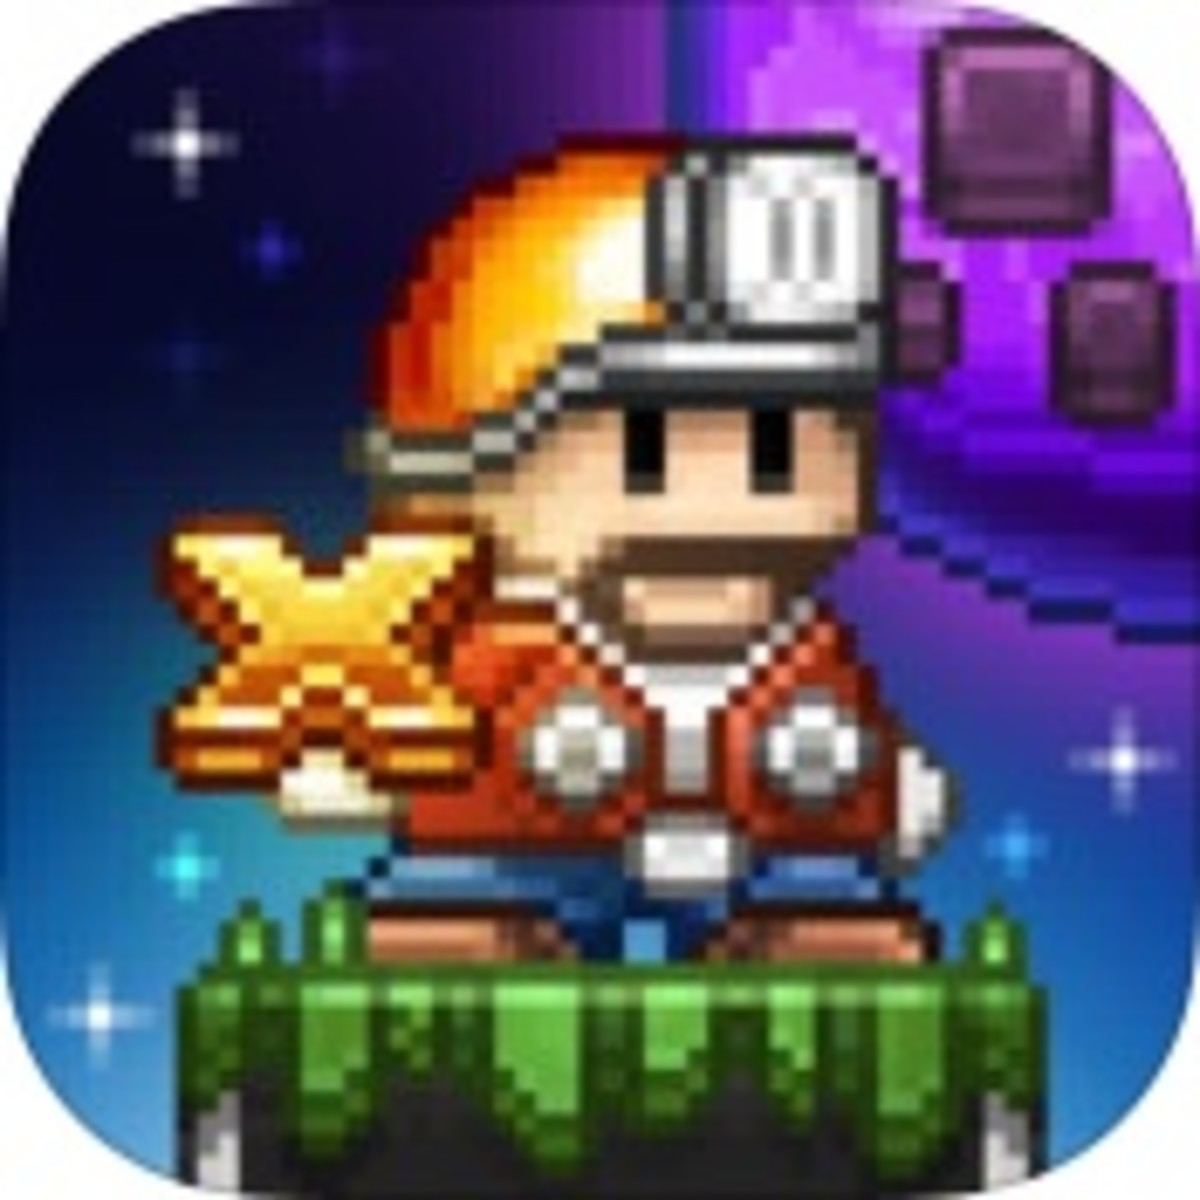 One Of The iOS Games Like Terraria